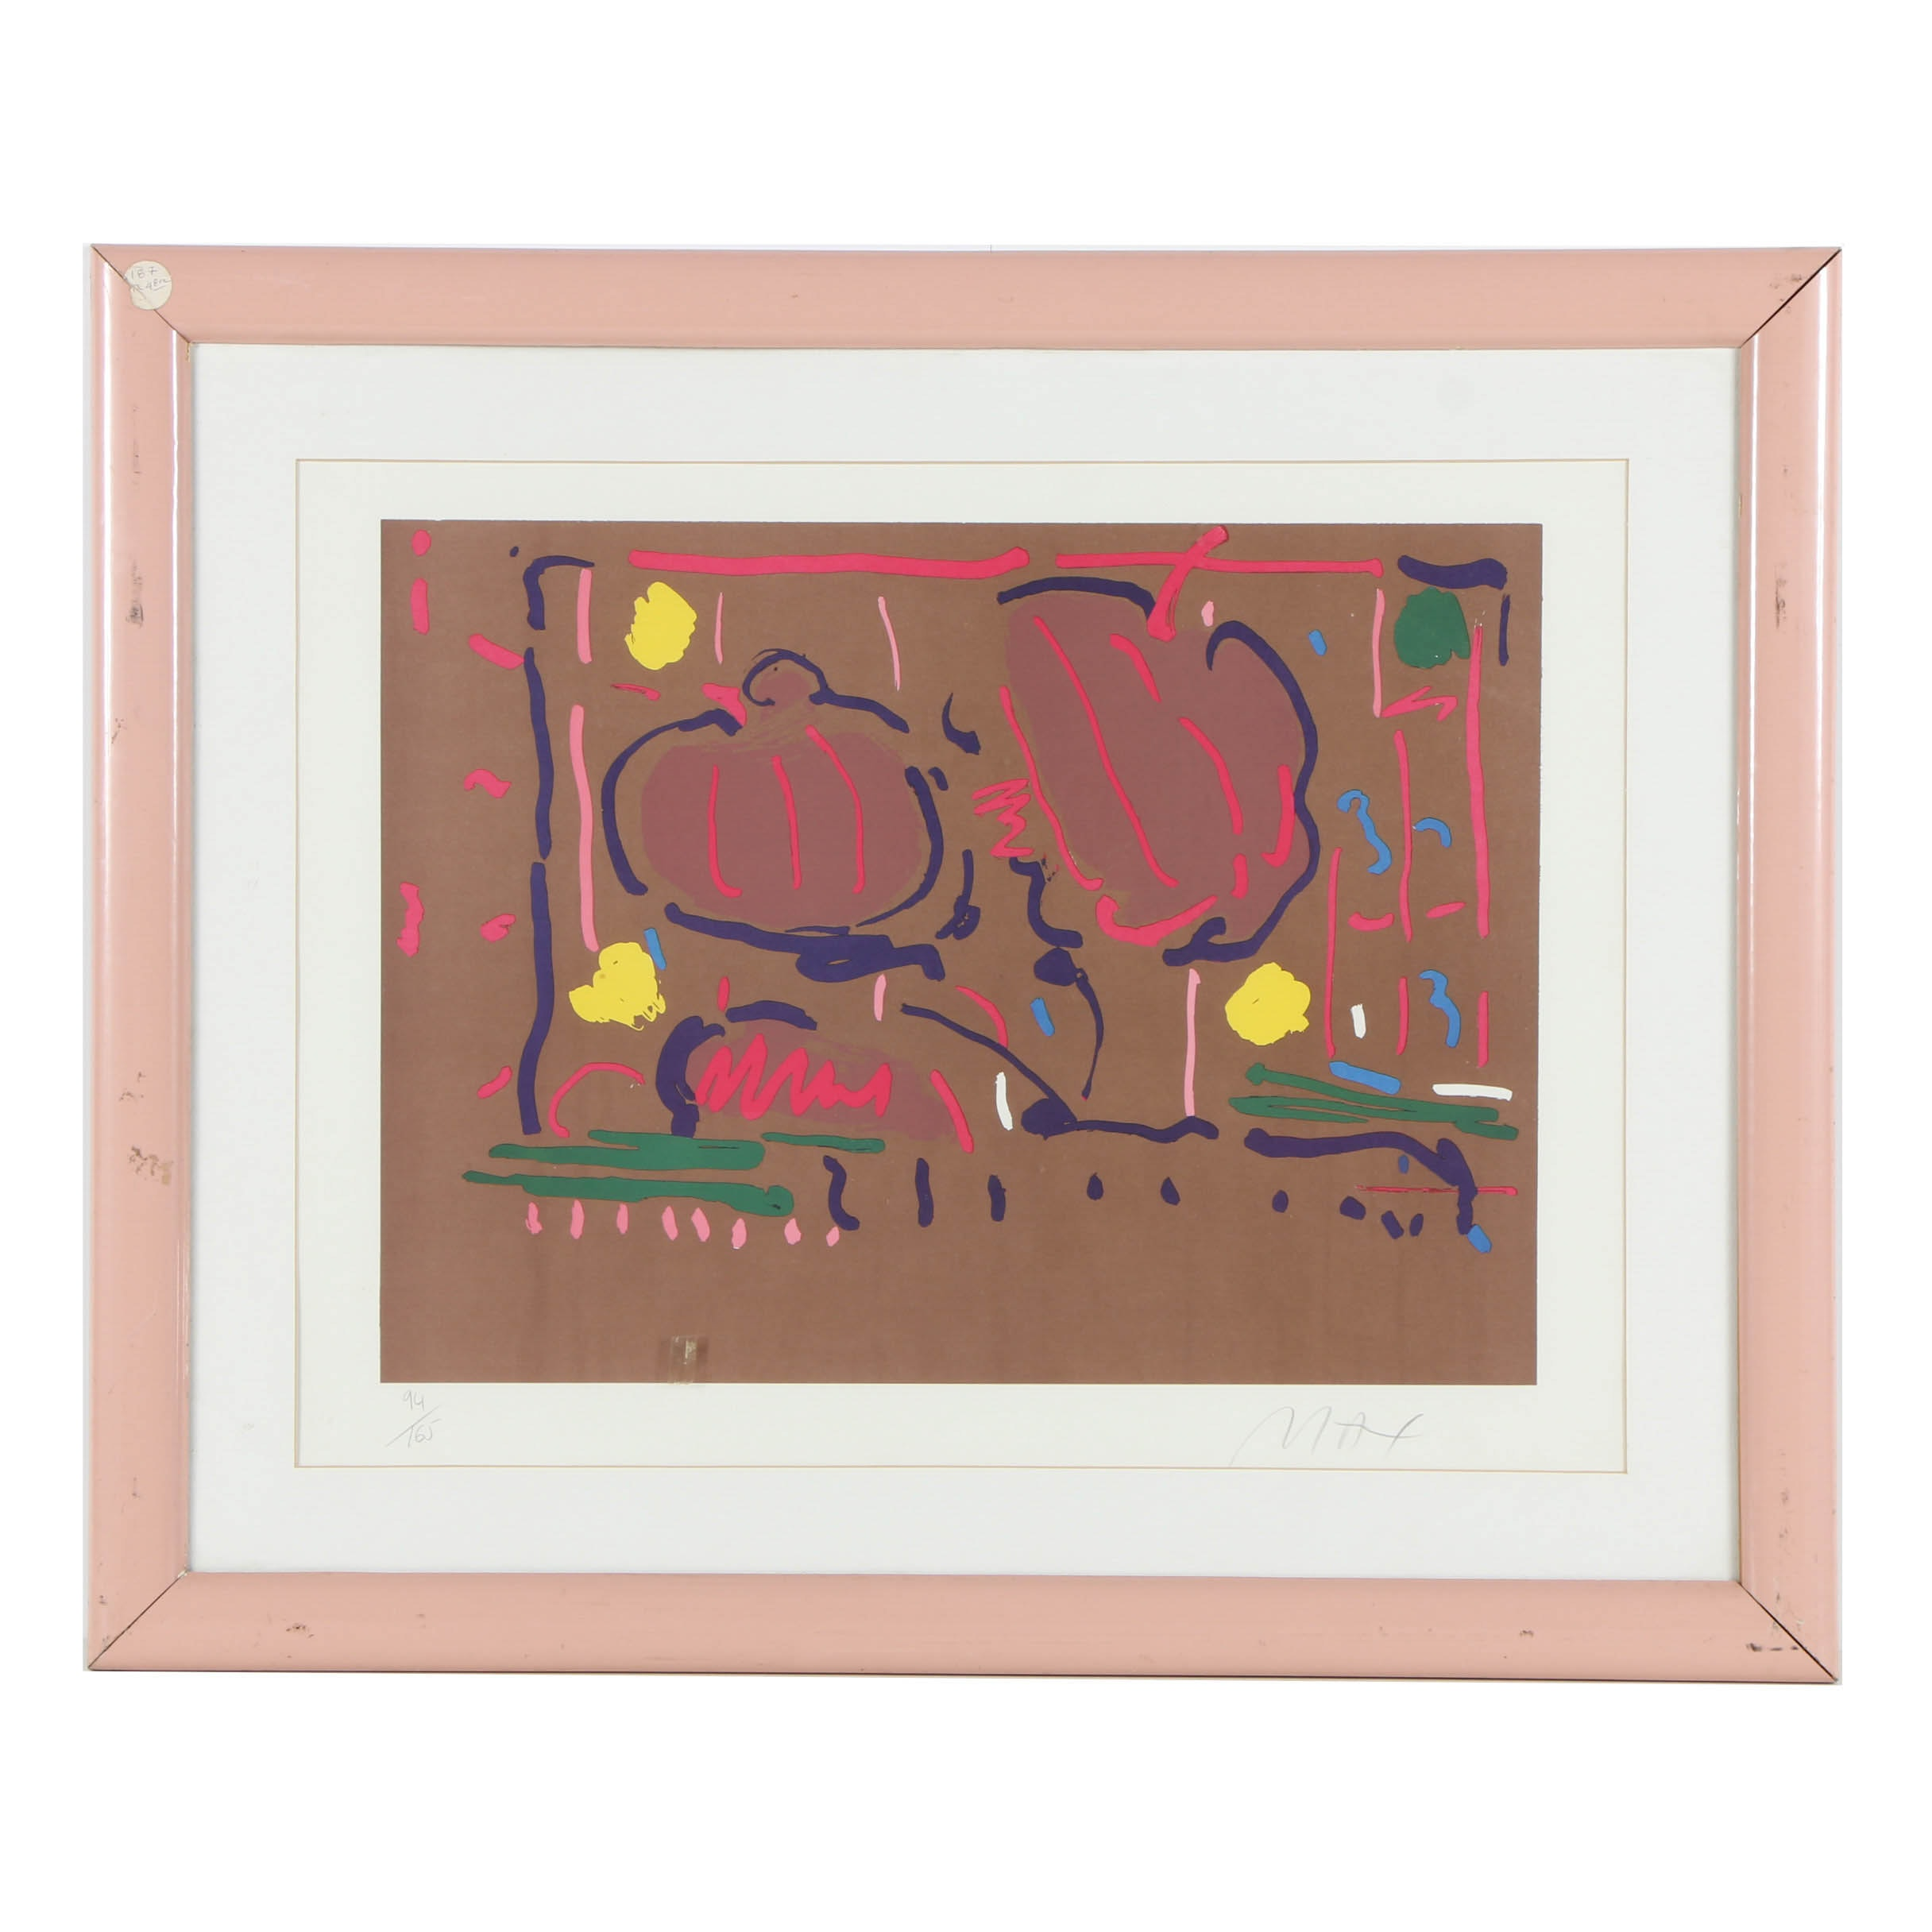 Limited Edition Signed Peter Max Serigraph on Paper